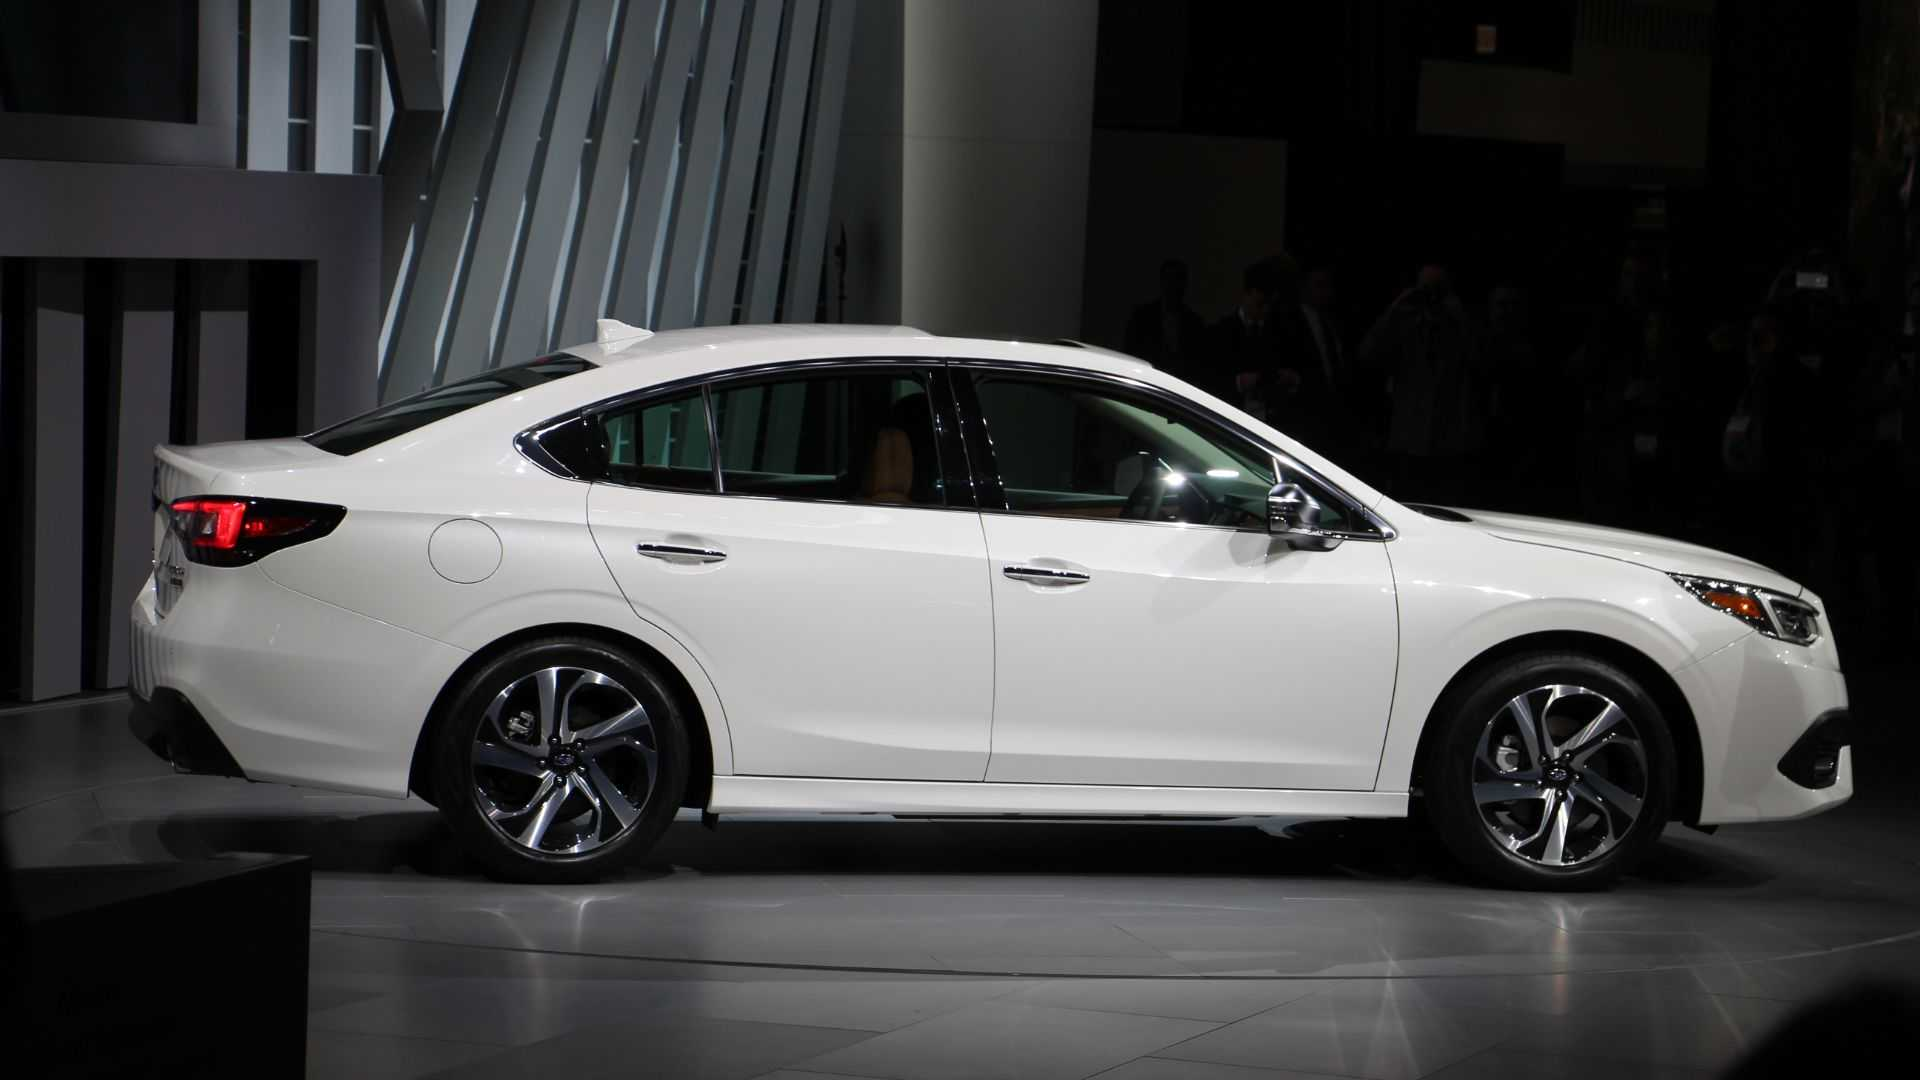 35 The Best 2020 Subaru Legacy Price Price And Release Date